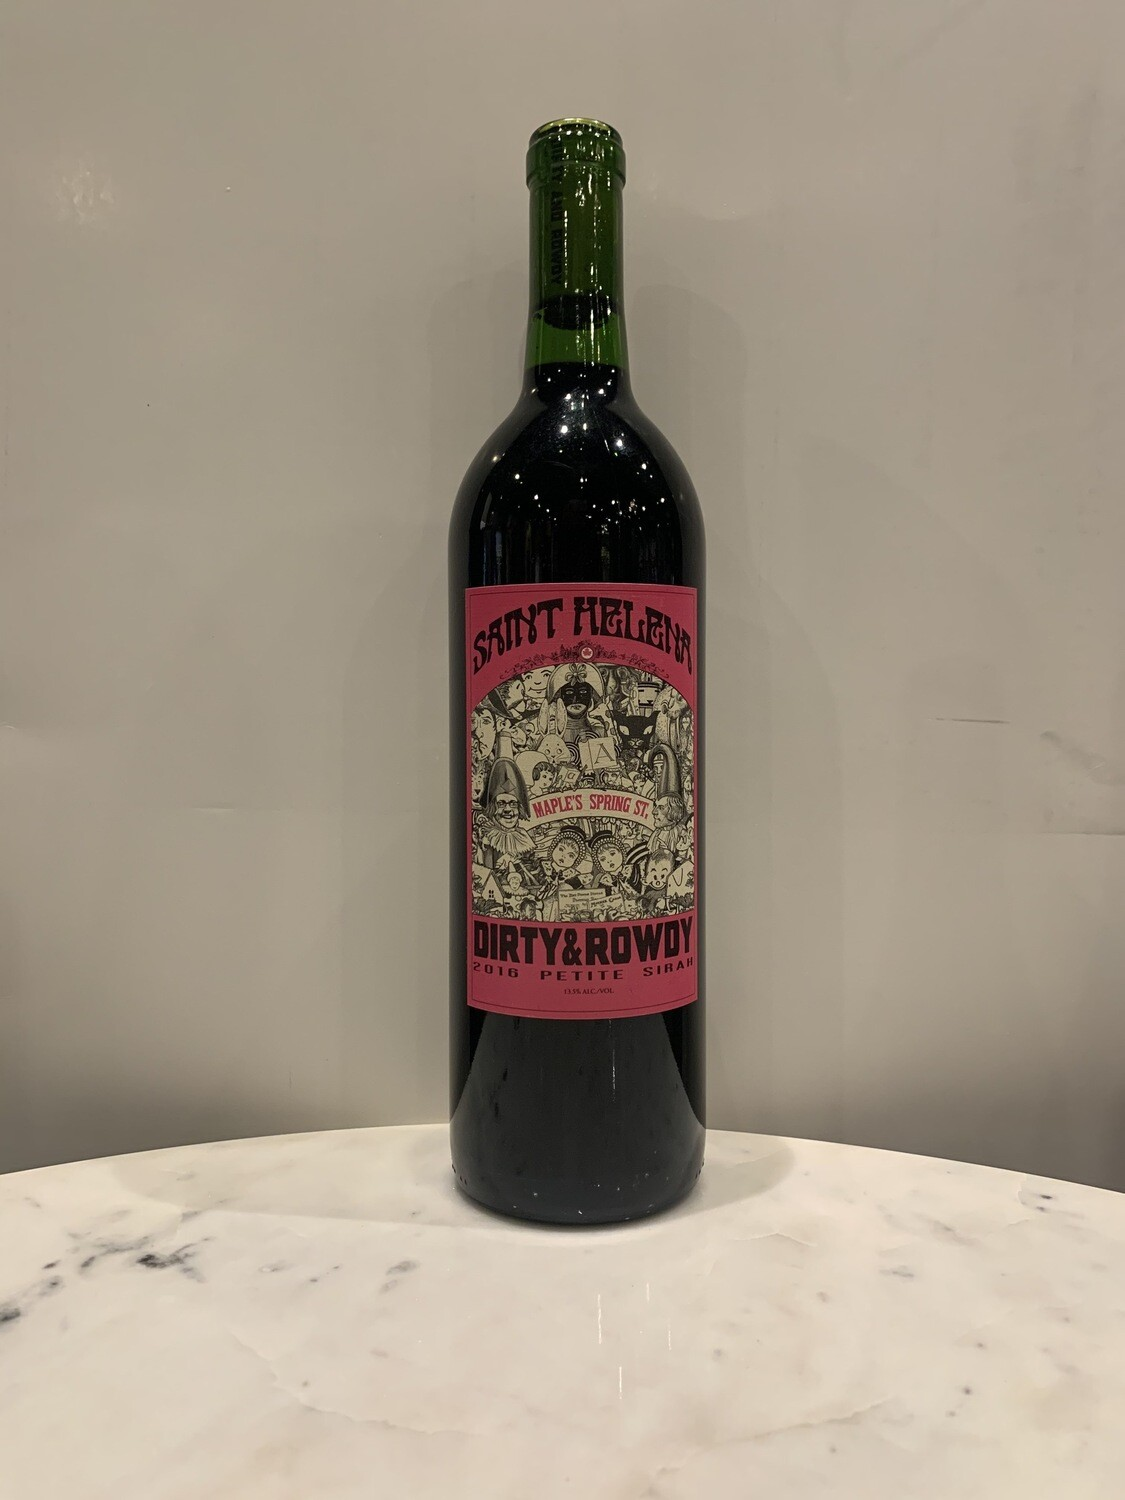 Dirty and Rowdy Maples Spring Street Petite Sirah 2016